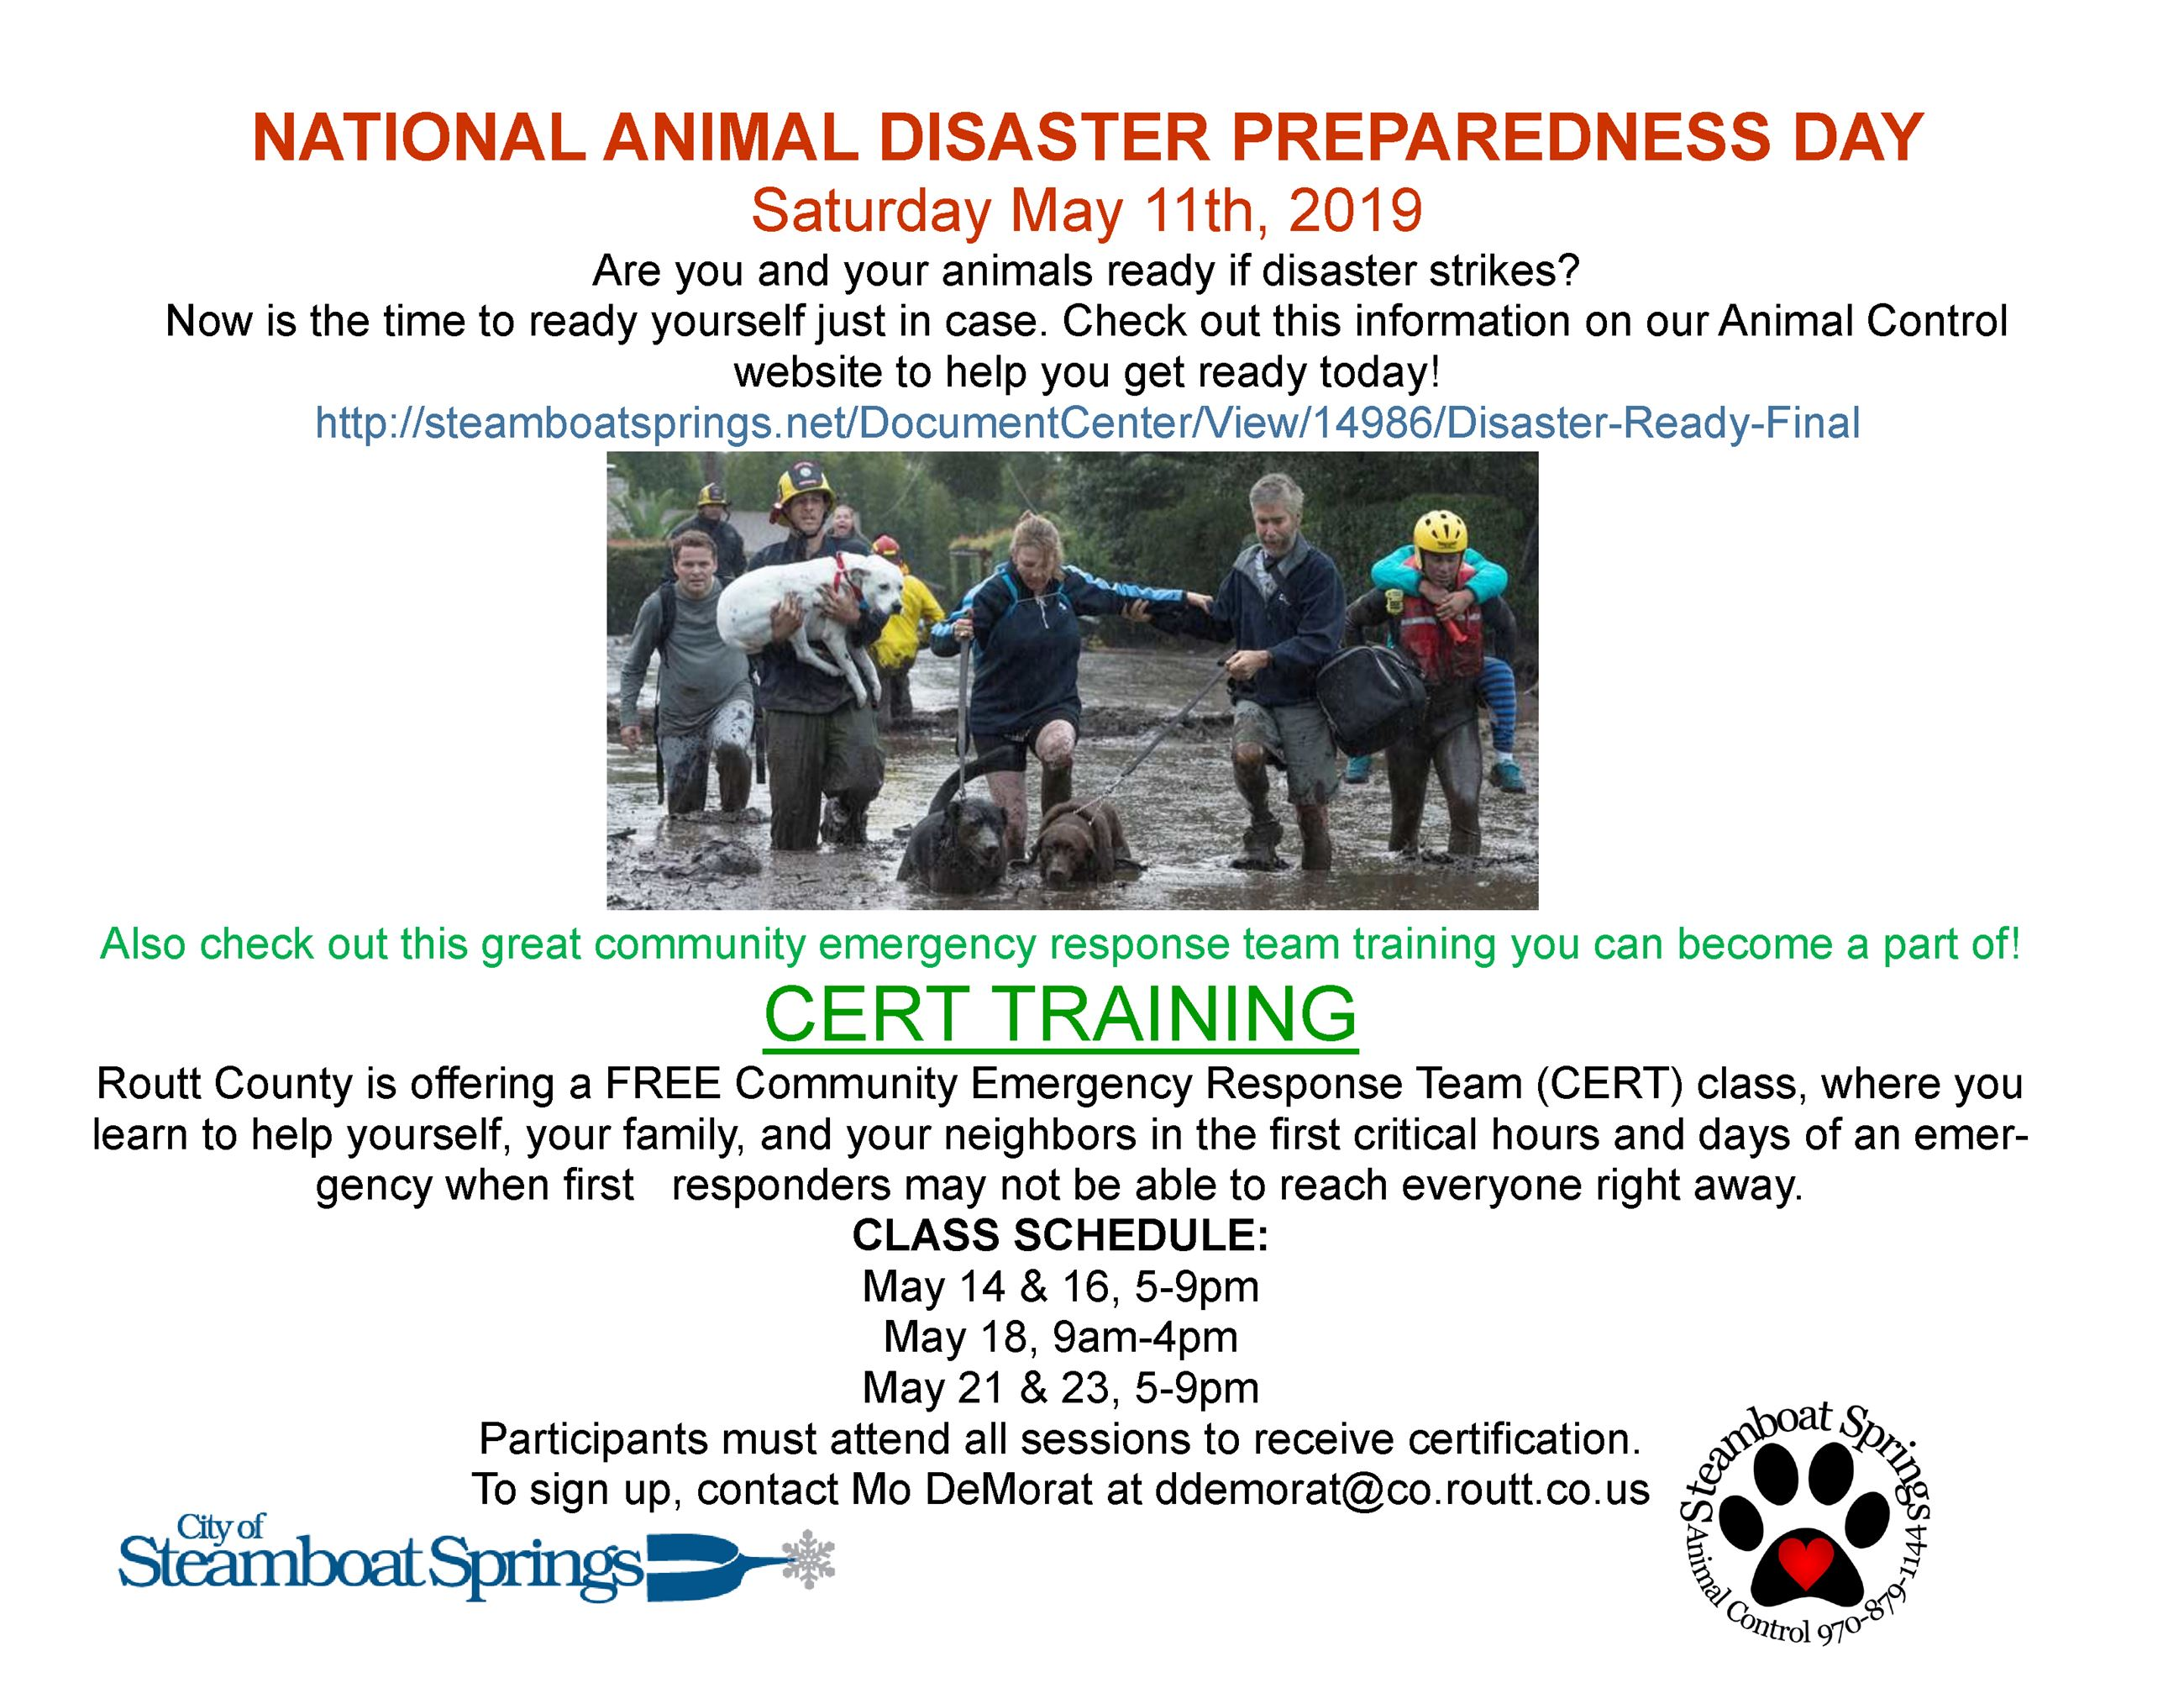 National Animal Disaster Preparedness Day 2019